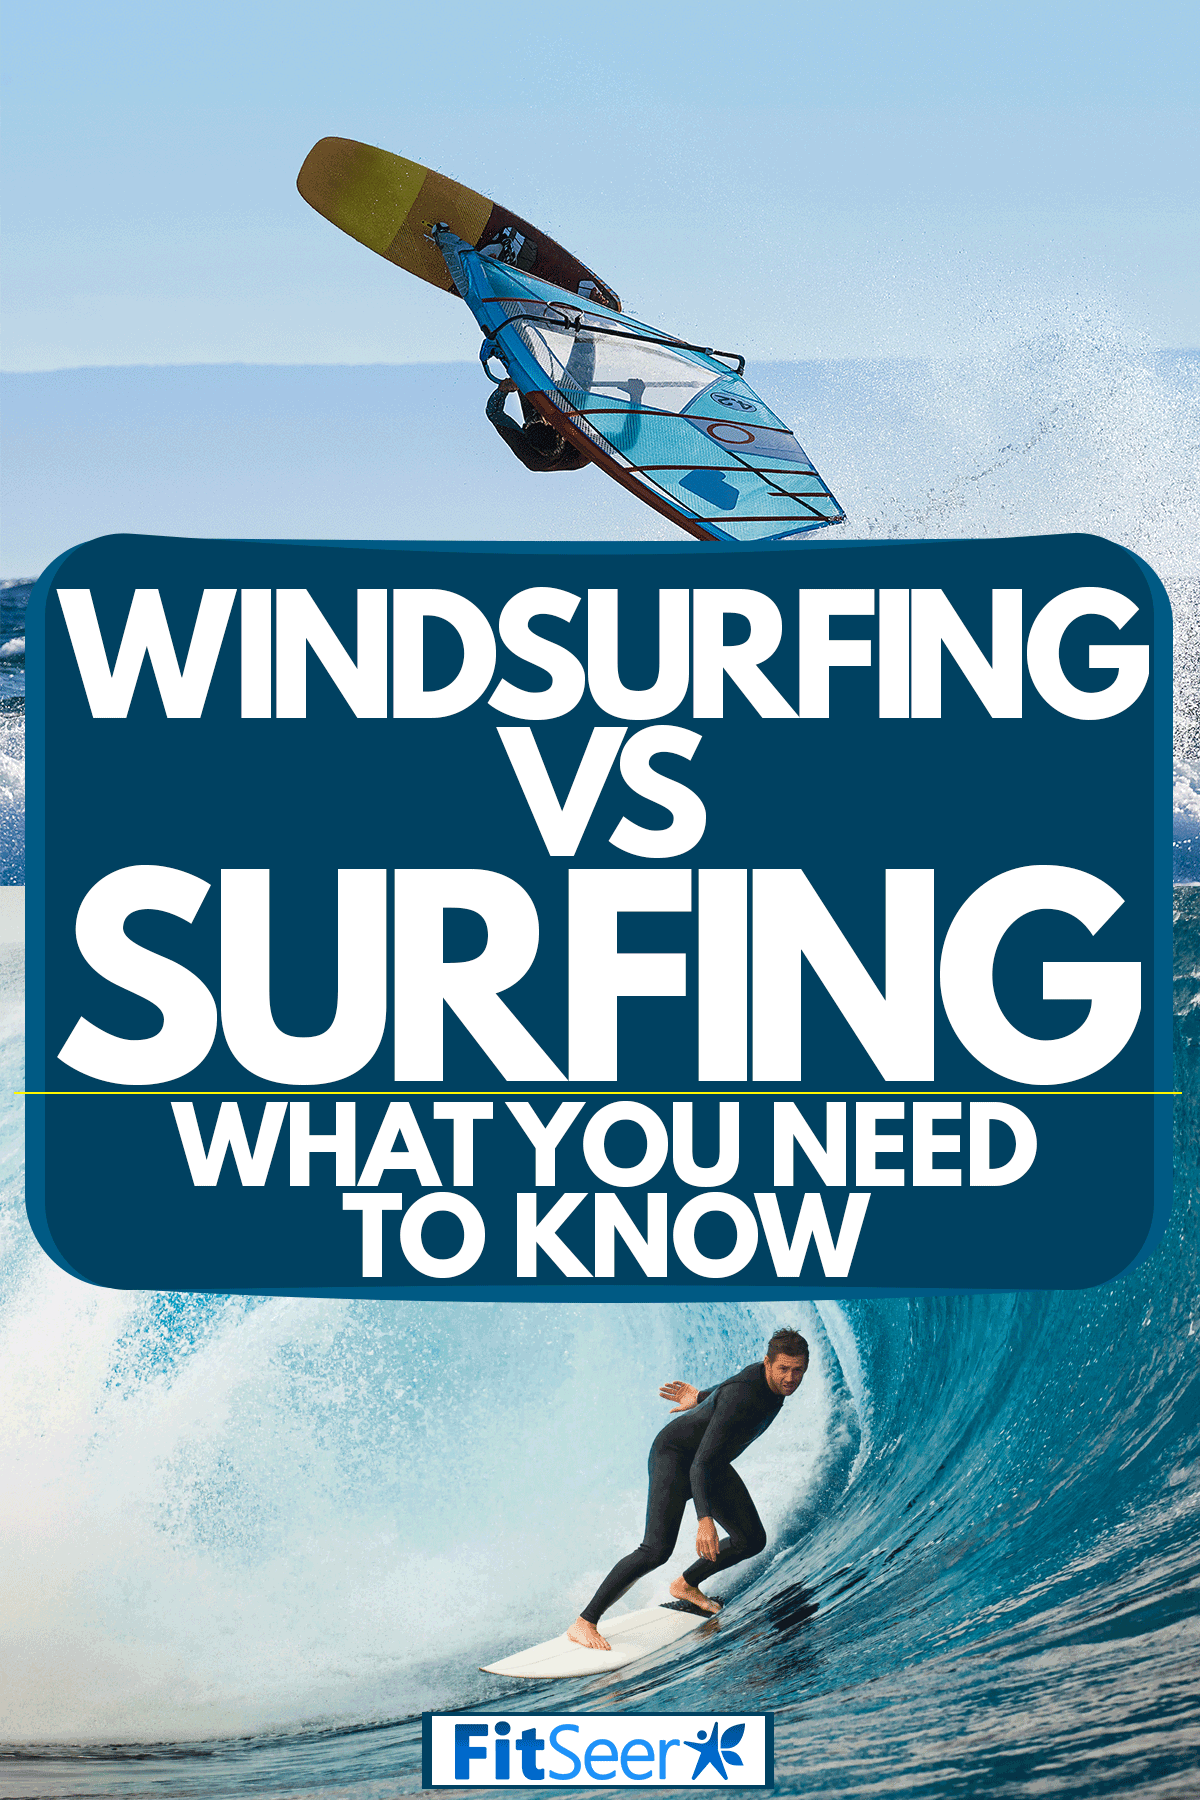 A windsurfer vs surfer collaged photo, Windsurfing Vs Surfing - What You Need To Know